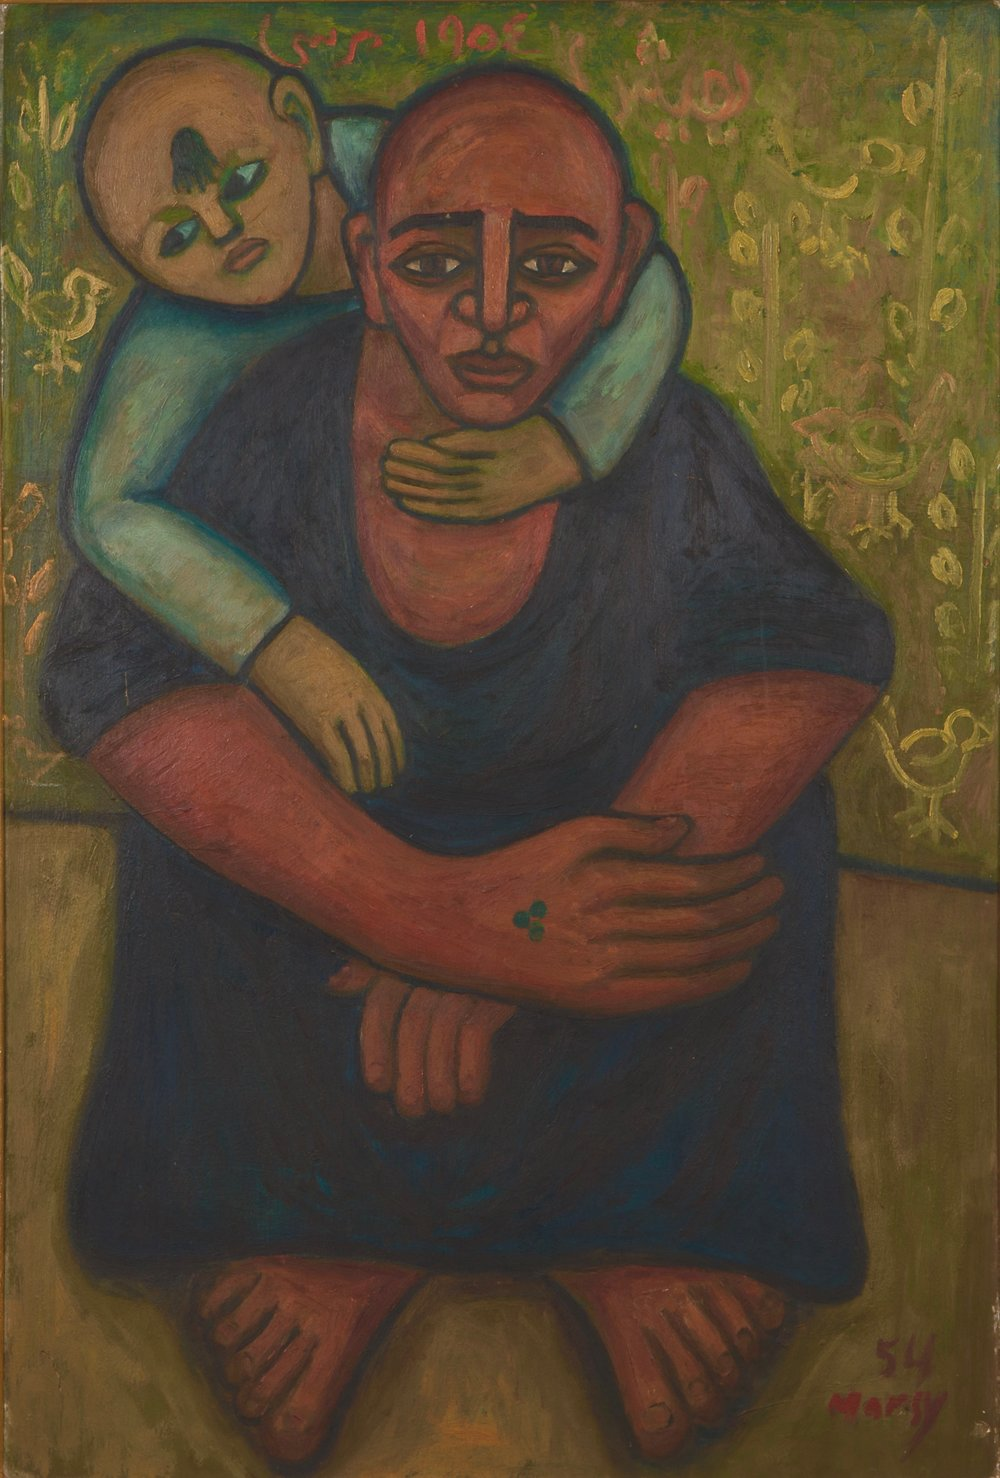 Ahmed-Morsi-Untitled-(Man-and-Son)-Alexandria-1954.jpg